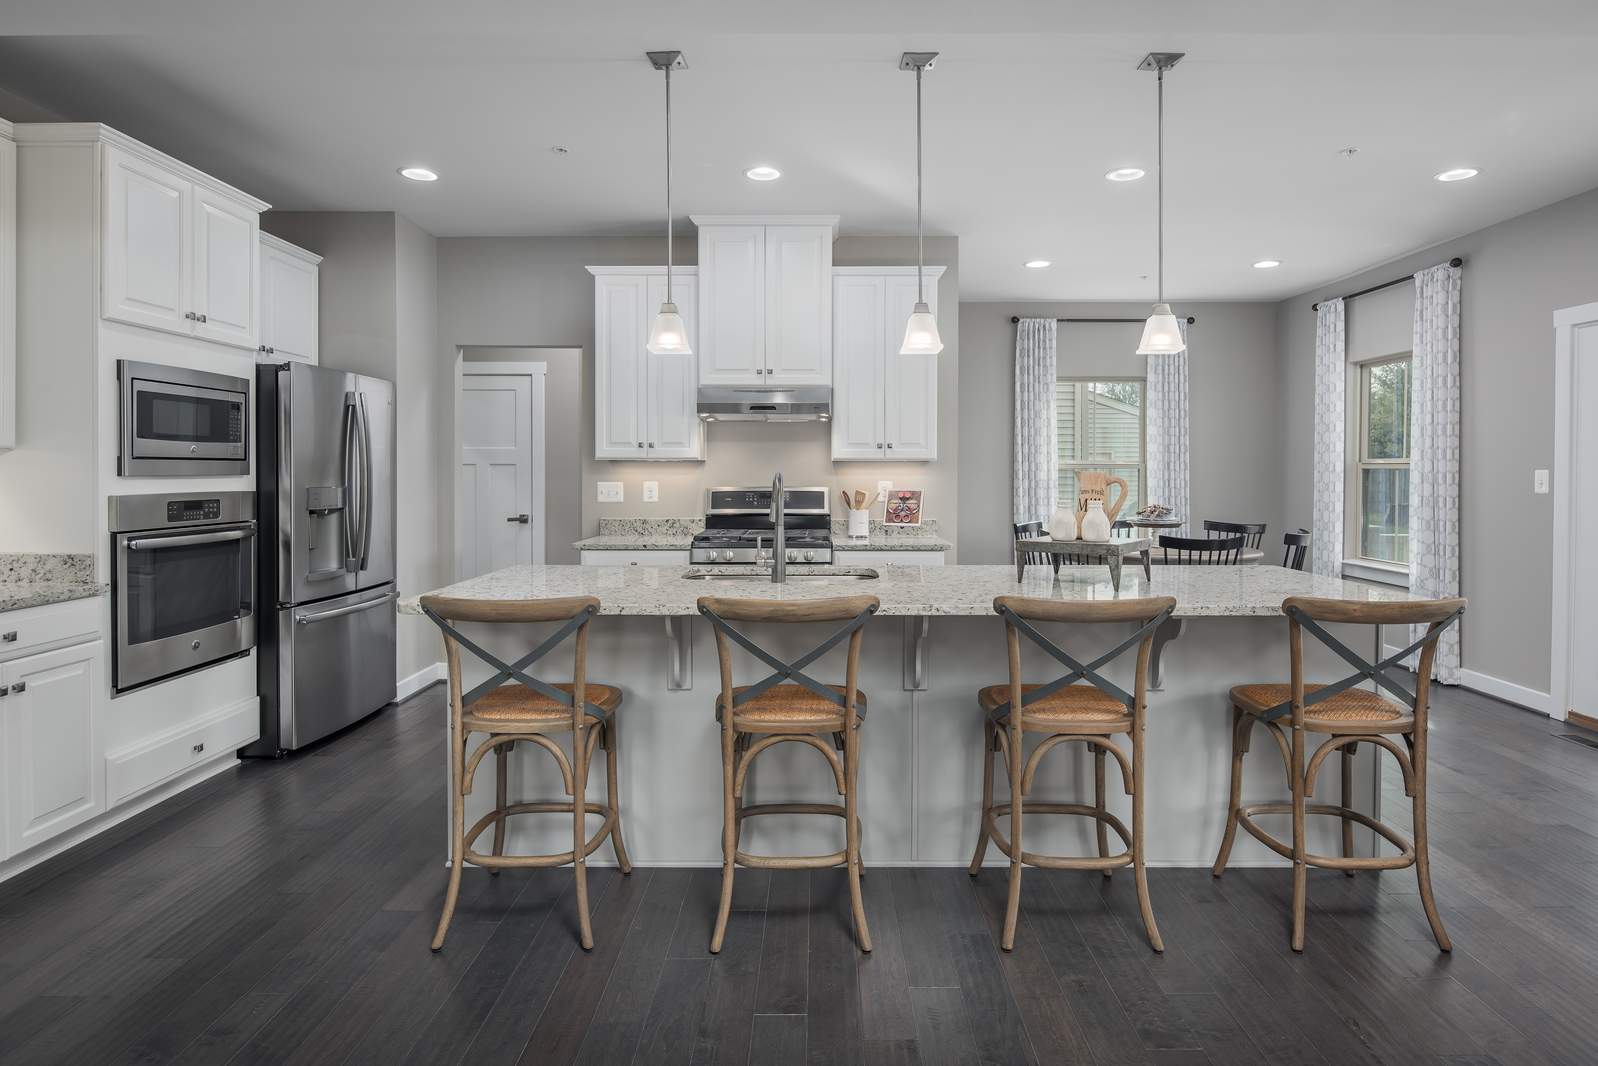 Come by to tour our new and modern designed homes for you in mind. Large open kitchen with designer interiors.